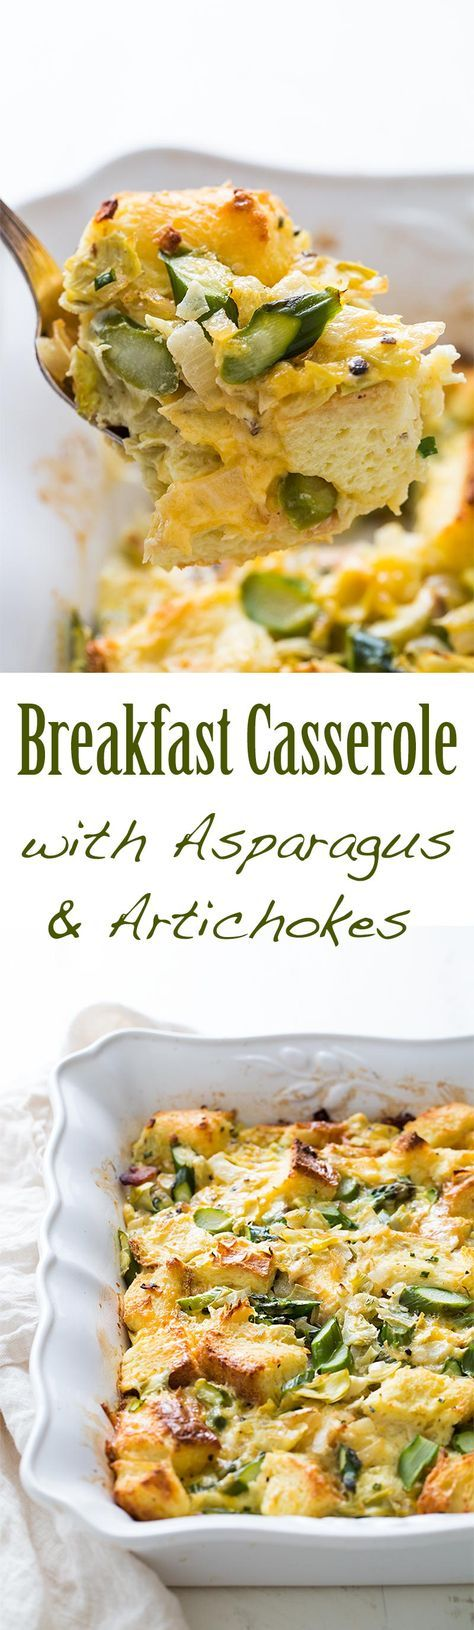 Asparagus and artichoke breakfast casserole with bacon, cheddar cheese, rustic bread, milk and egg. Perfect for a Sunday brunch! On SimplyRecipes.com